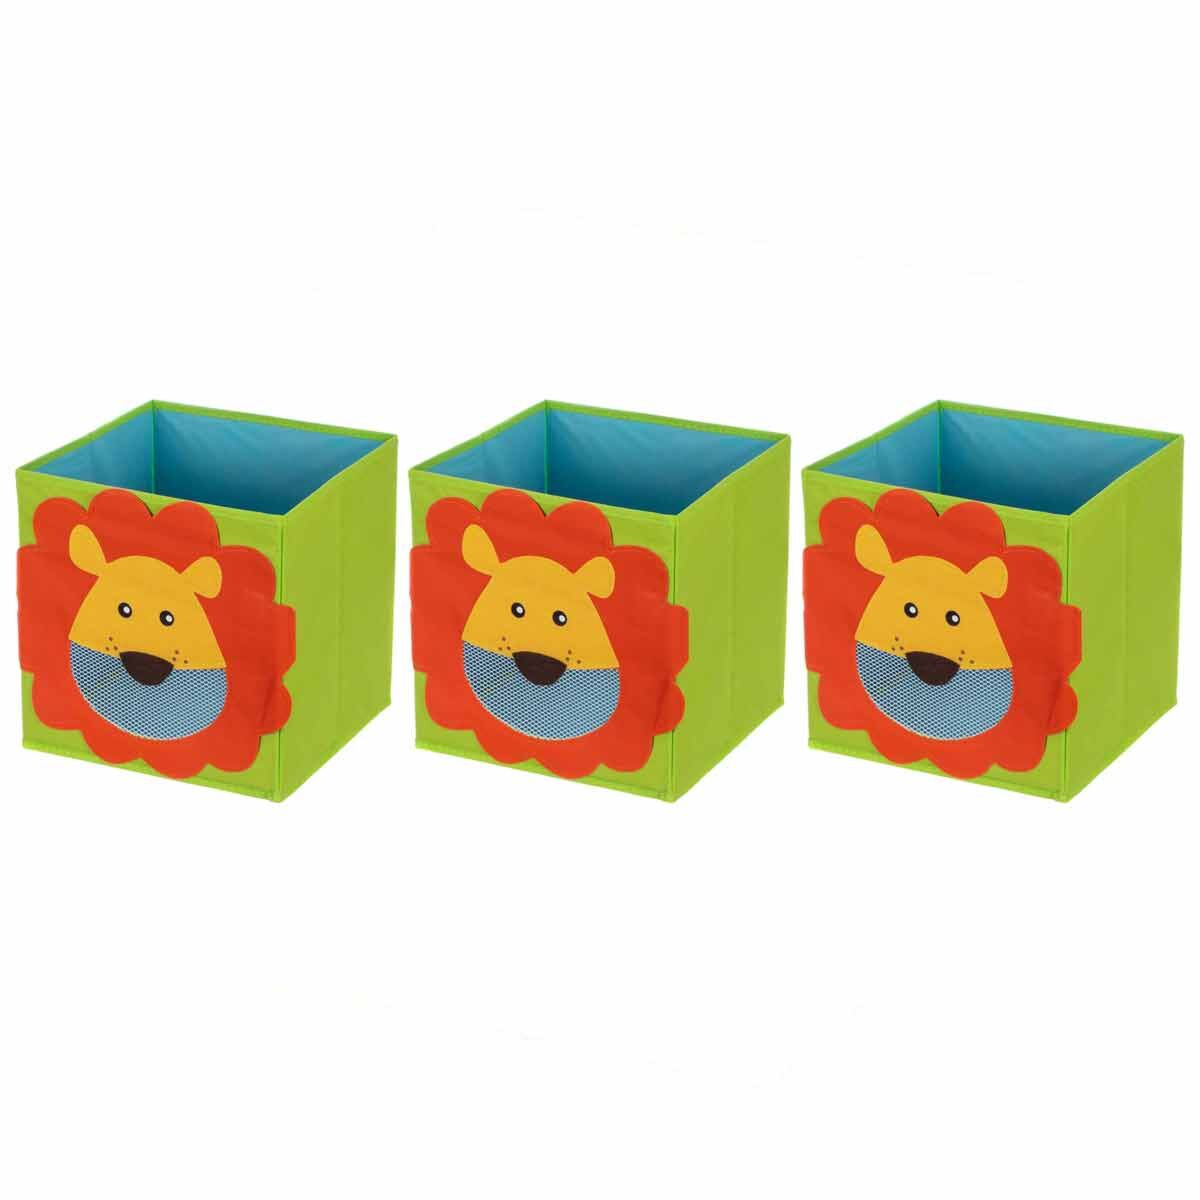 Ryman Childrens Storage Cube Lion Pack of 3